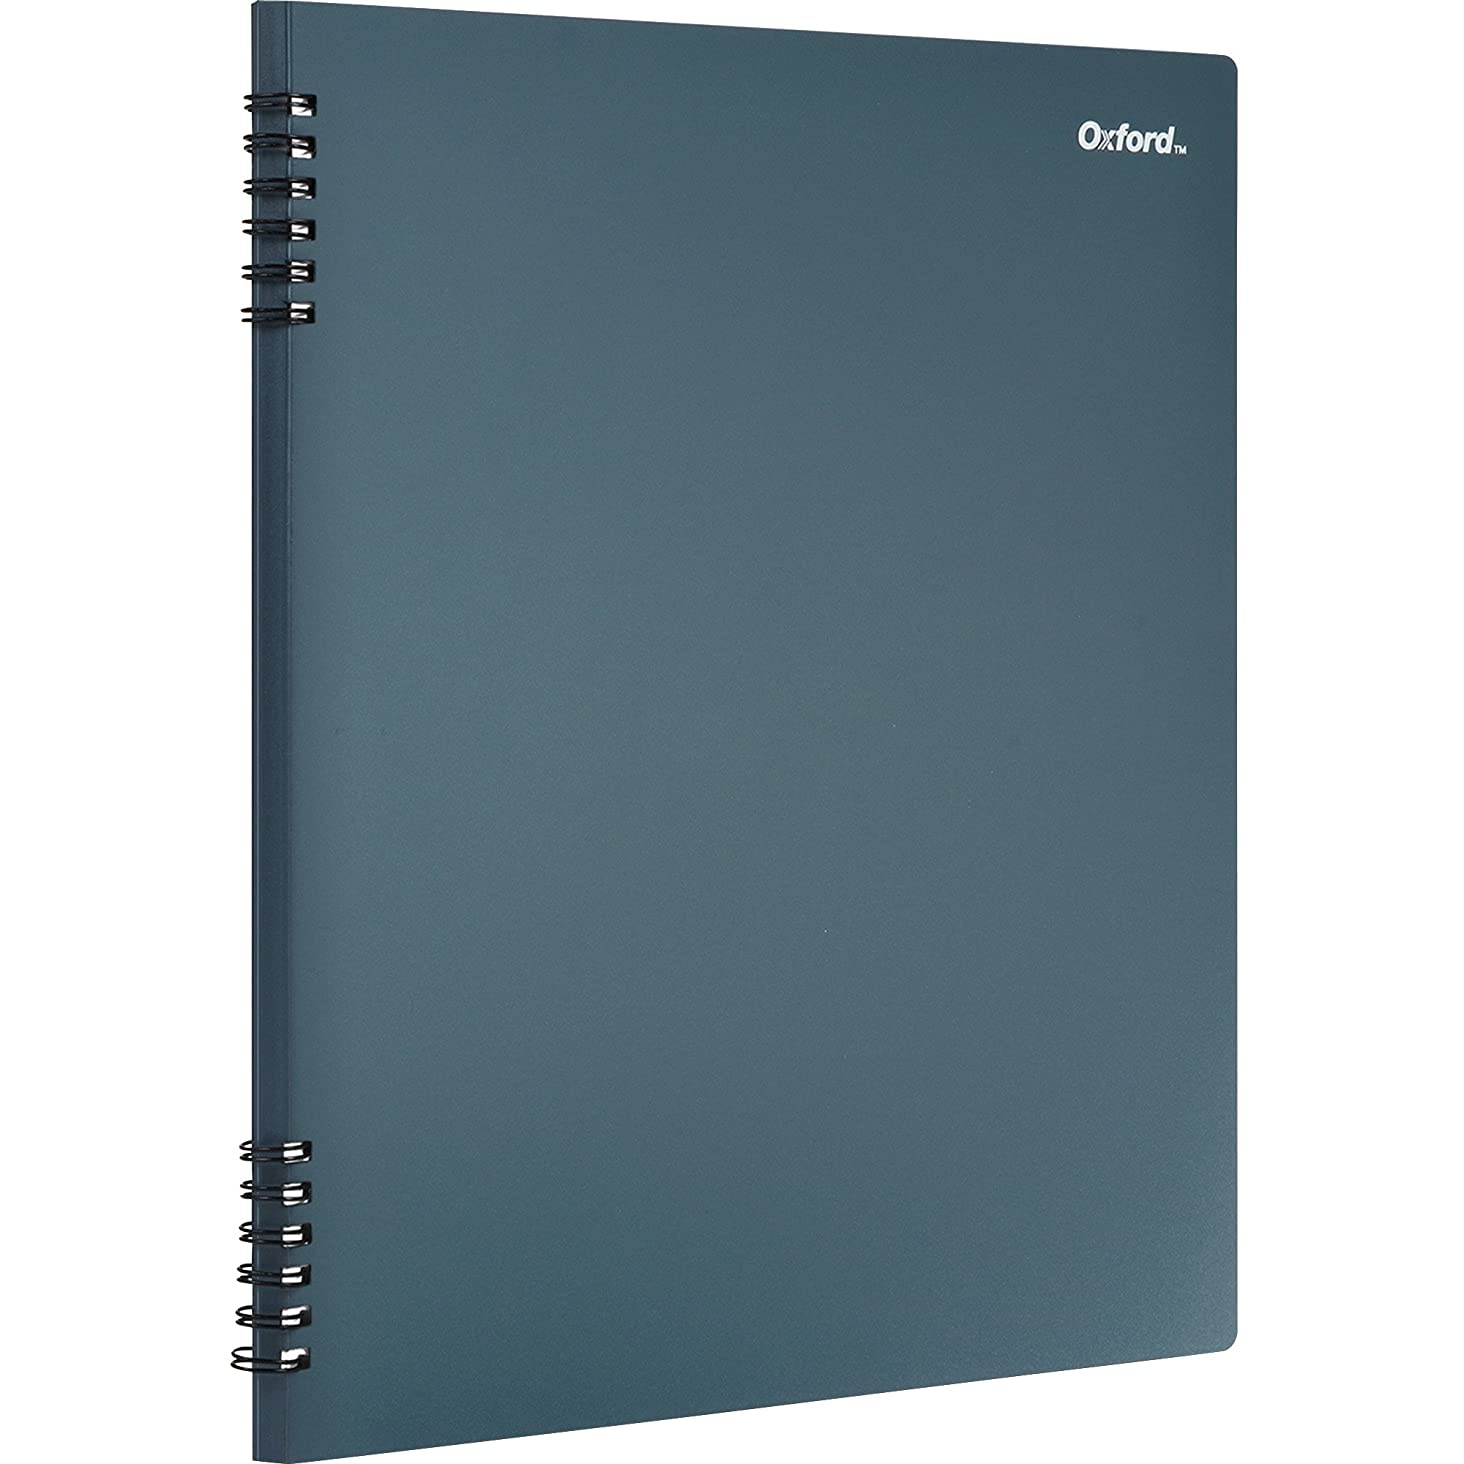 Oxford University Press Stone Paper Notebook - 60 Sheets - 9